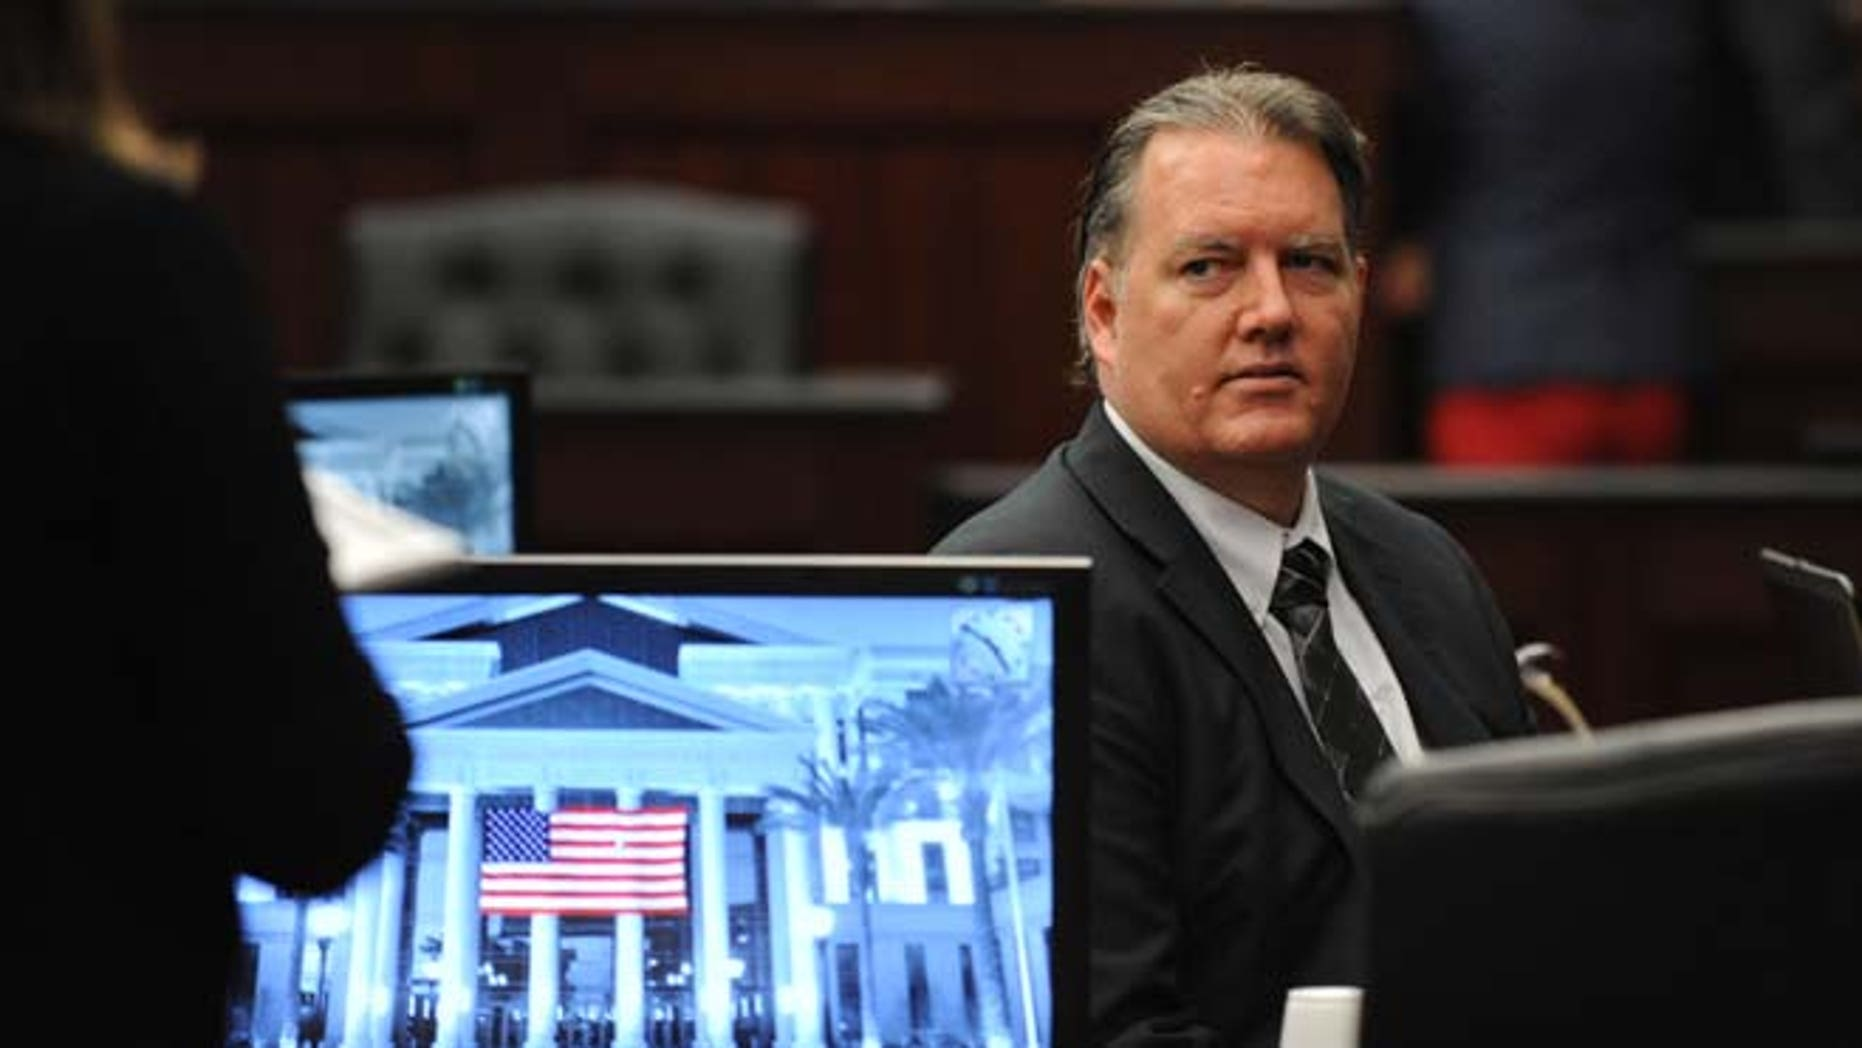 Sept. 27, 2014: Michael Dunn looks towards the legal representative sitting with his parents as his trial ends for the day in the Duval County Courthouse in Jacksonville, Fla.